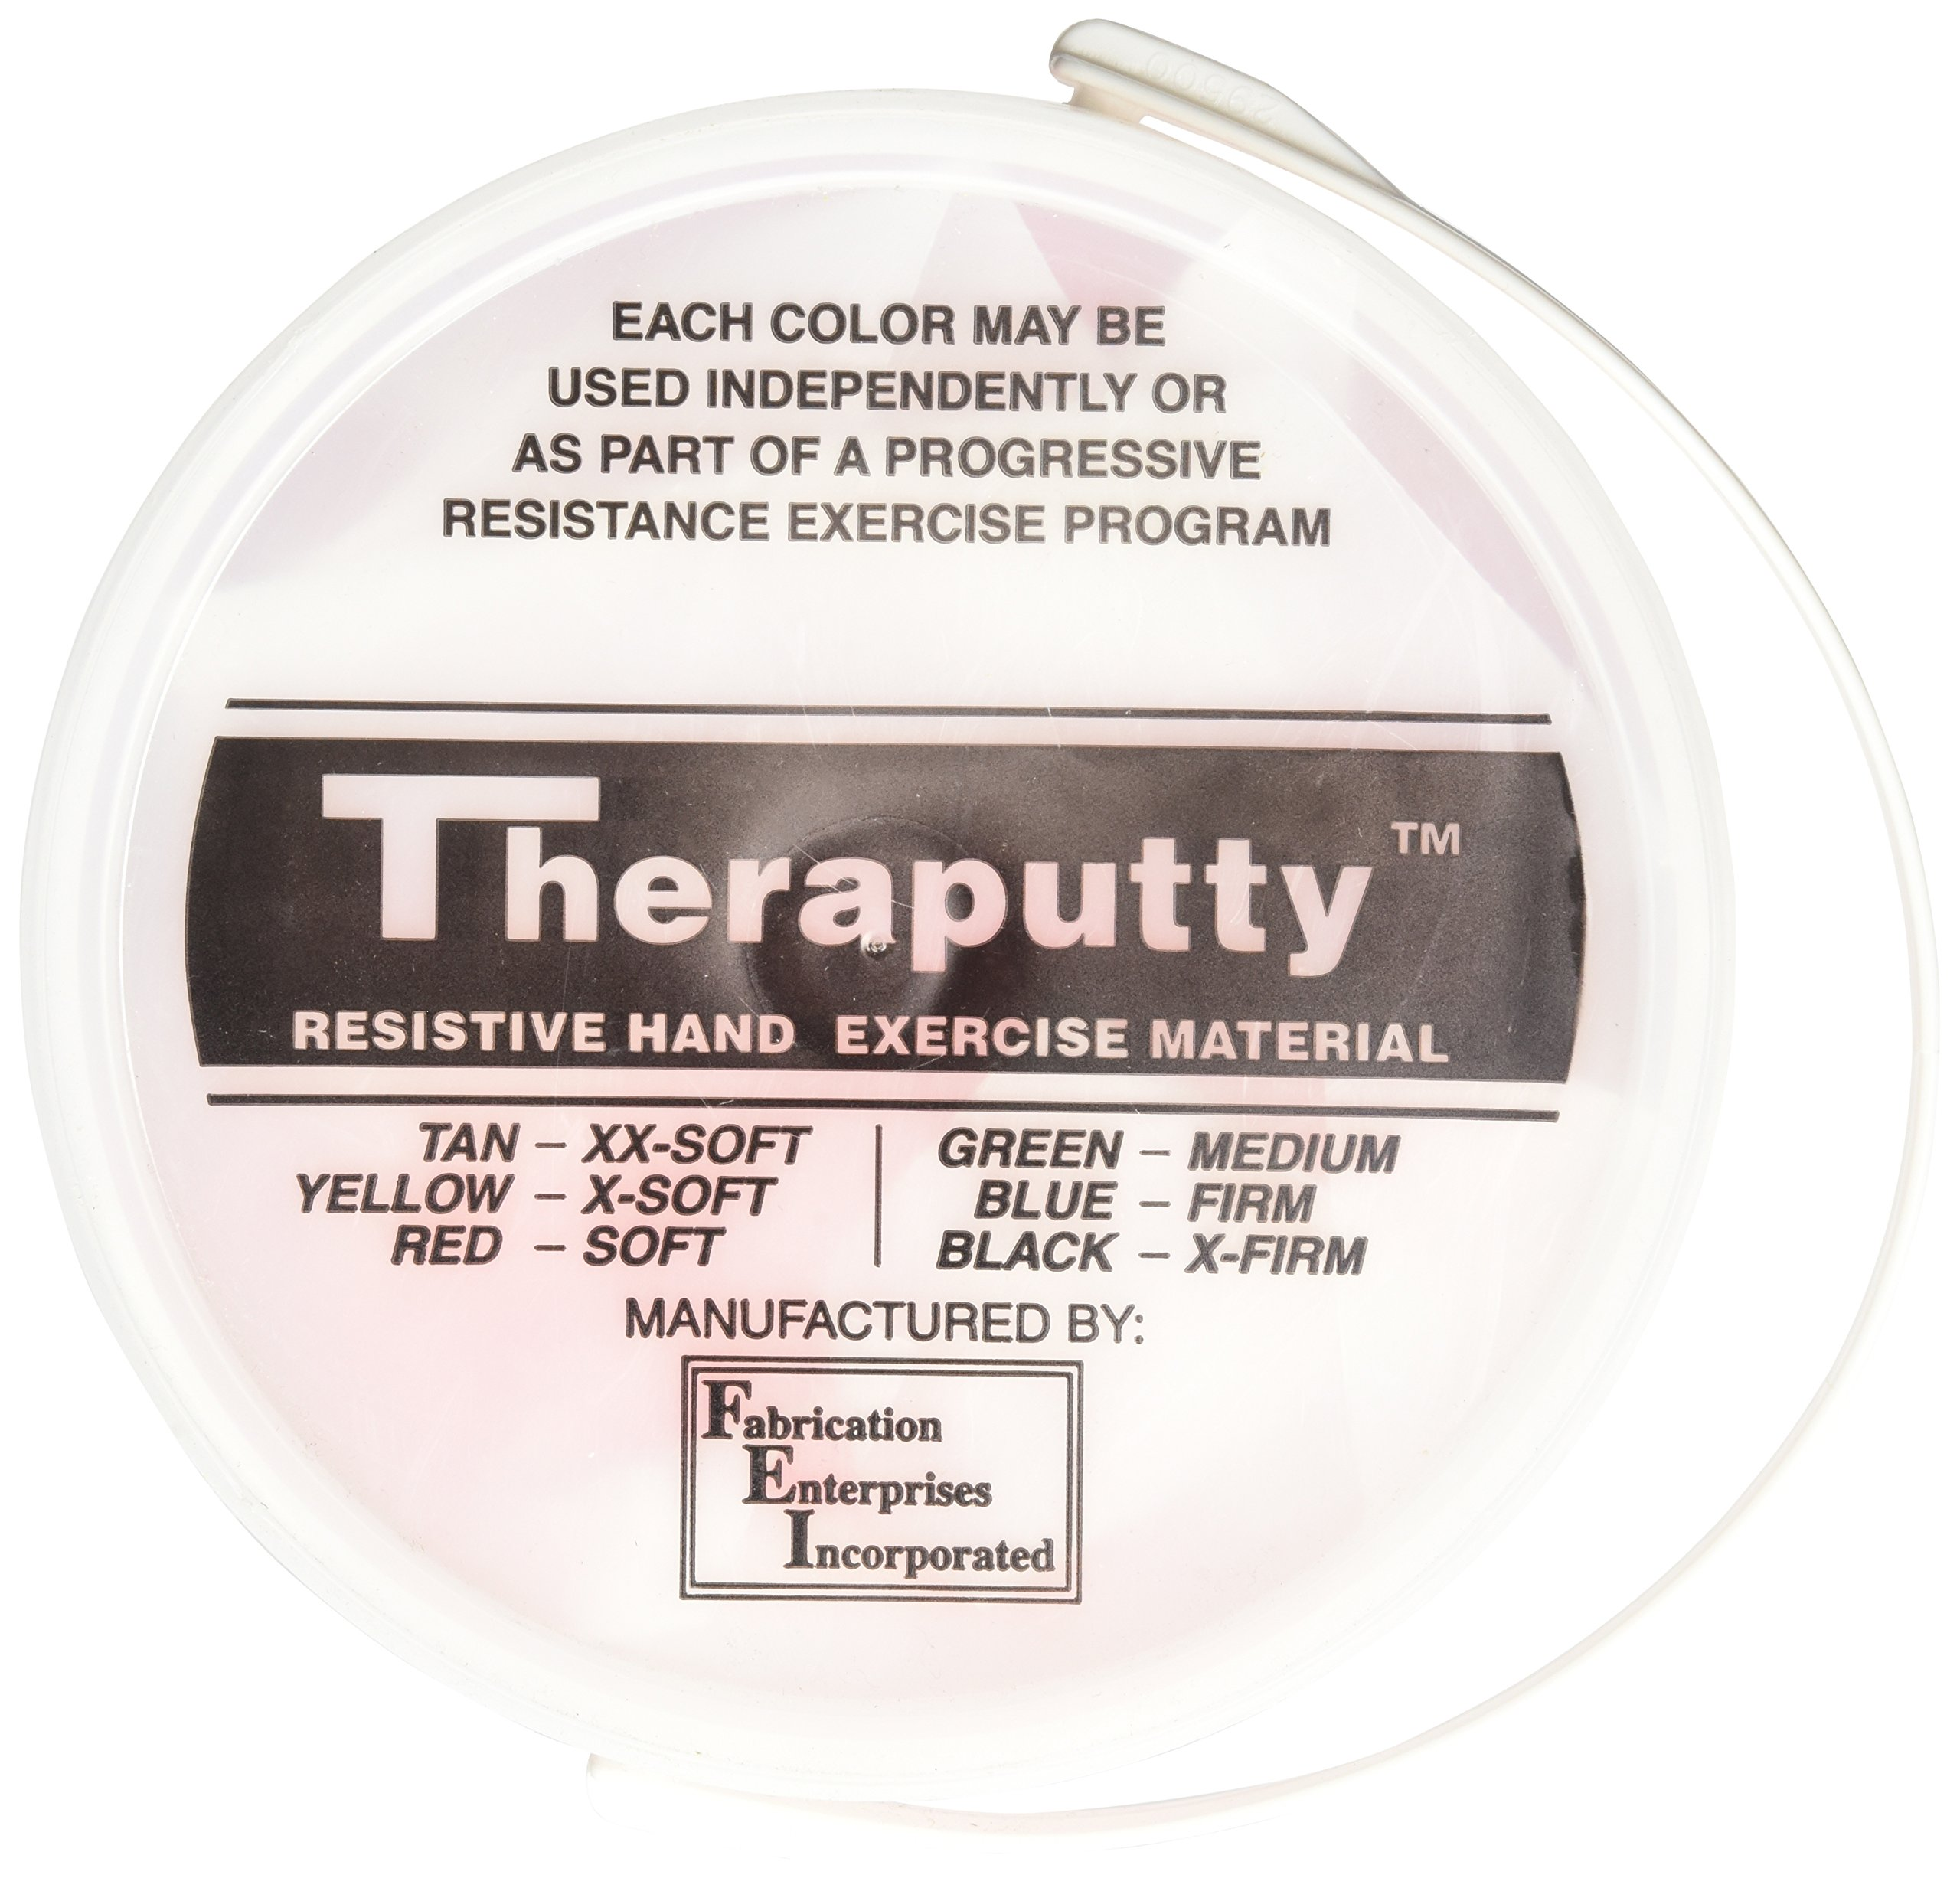 CanDo TheraPutty Plus Anti-microbial, Red: Soft, 5 lb